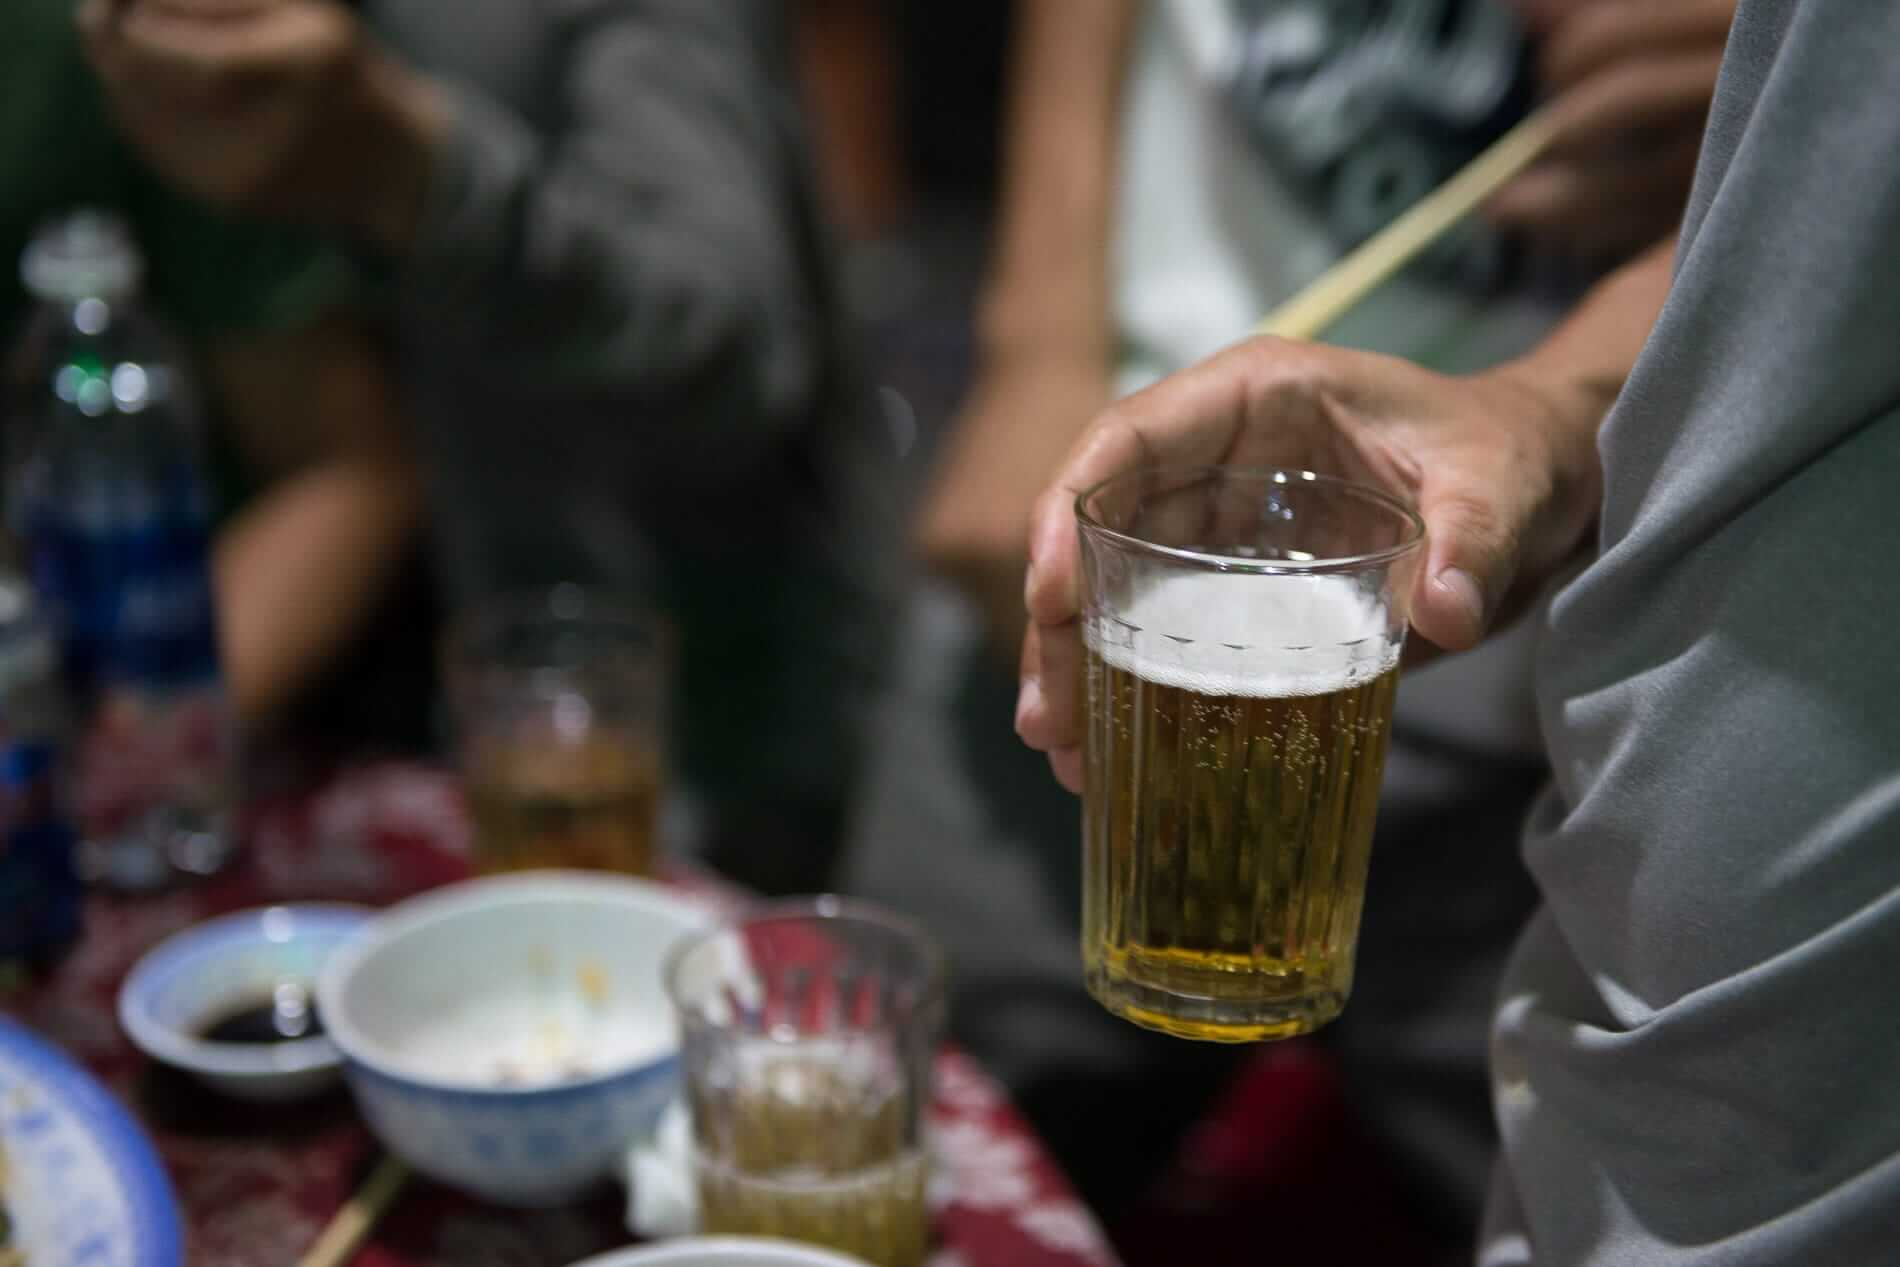 A glass of beer in Hoi An